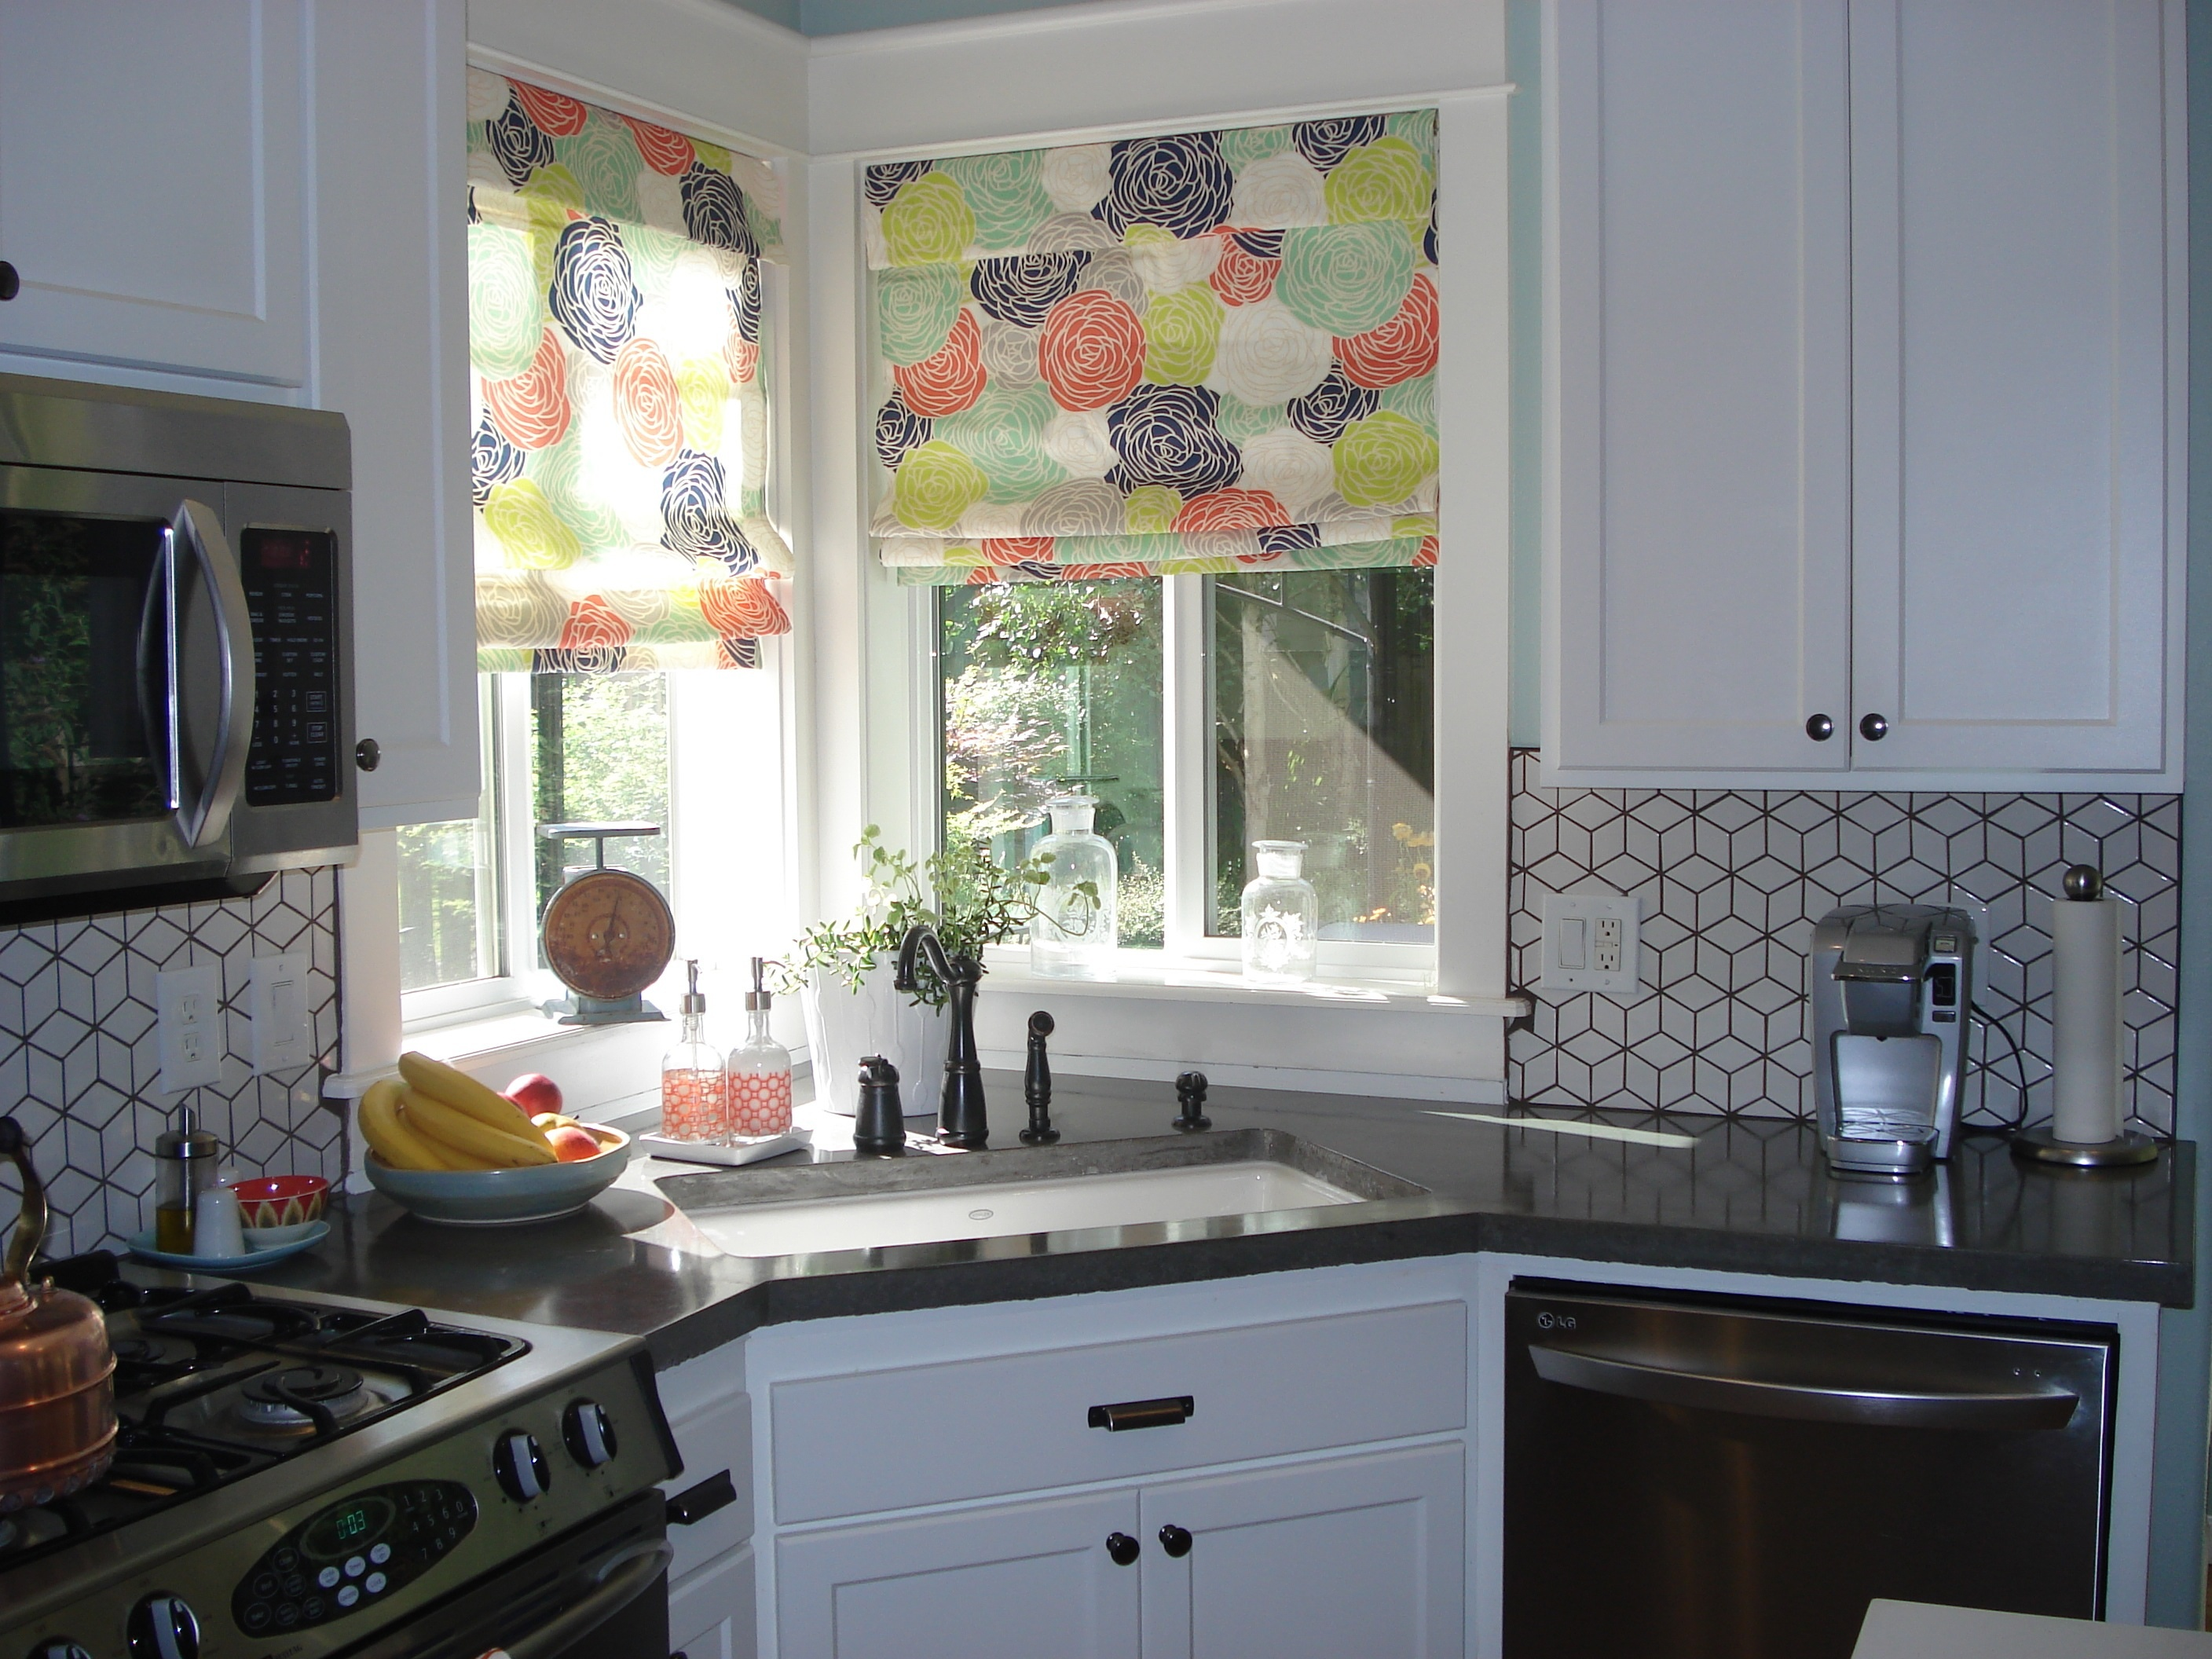 After, my hydrangea fabric on roman shades